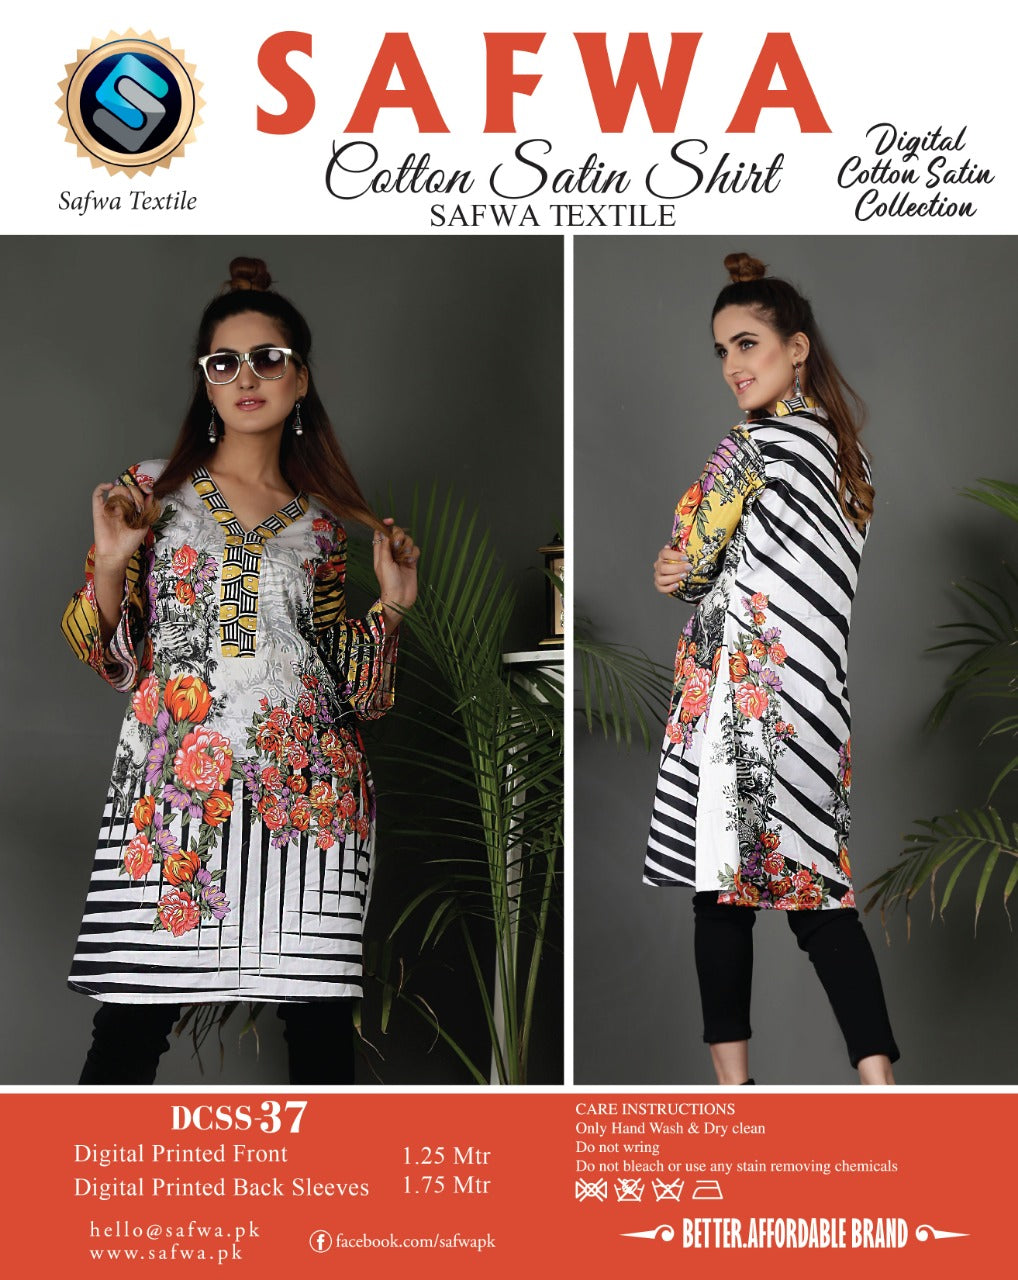 SAFWA DRESS DESIGN, DRESSES, PAKISTANI DRESSES, DCSS-37- SAFWA DIGITAL COTTON SATIN SHIRT COLLECTION -SHIRT KURTI KAMEEZ-Shirt-Kurti-SAFWA -SAFWA Brand Pakistan online shopping for Designer Dresses